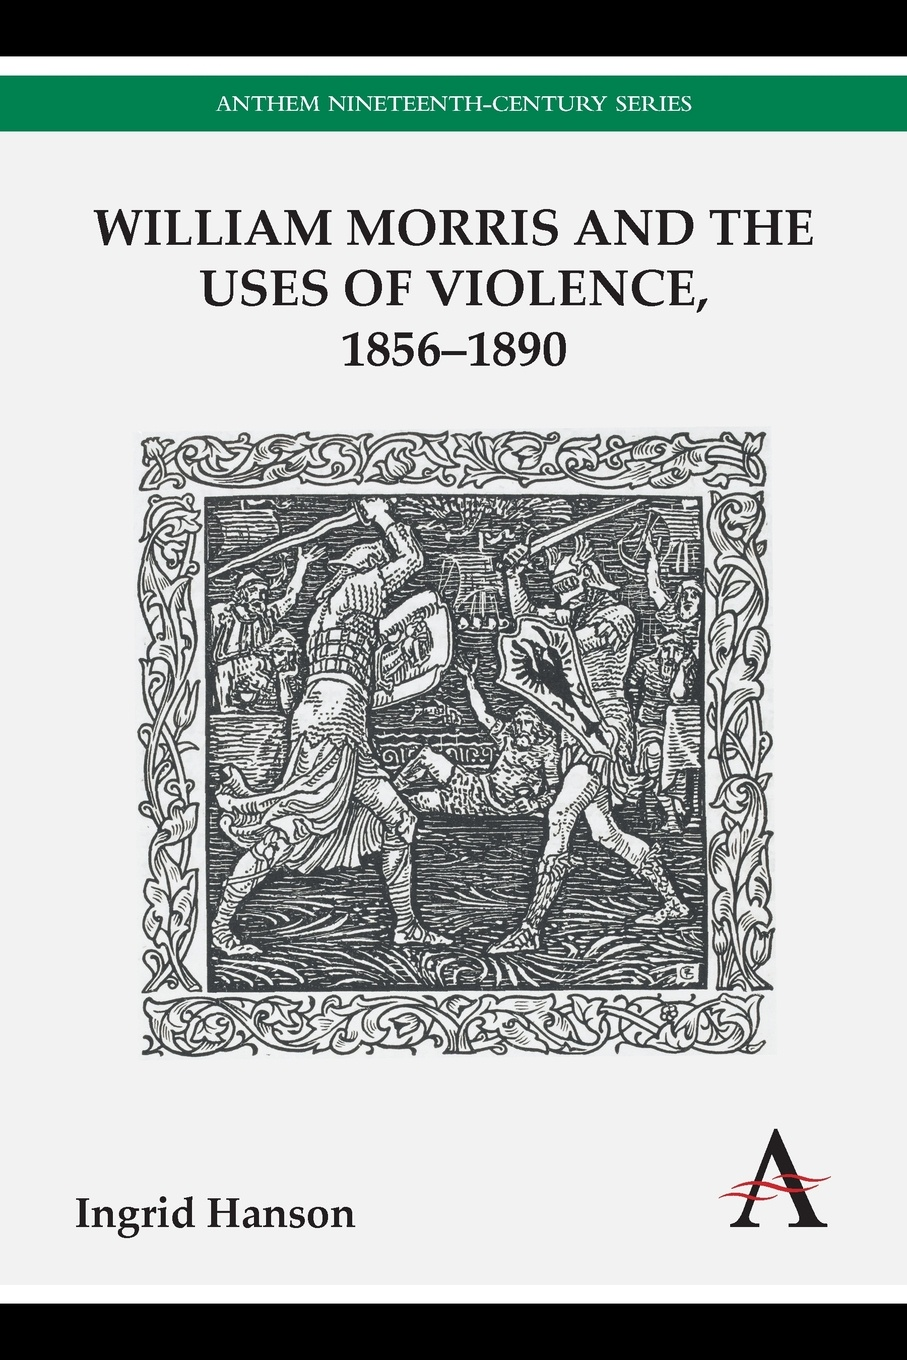 цены Ingrid Hanson William Morris and the Uses of Violence, 1856-1890